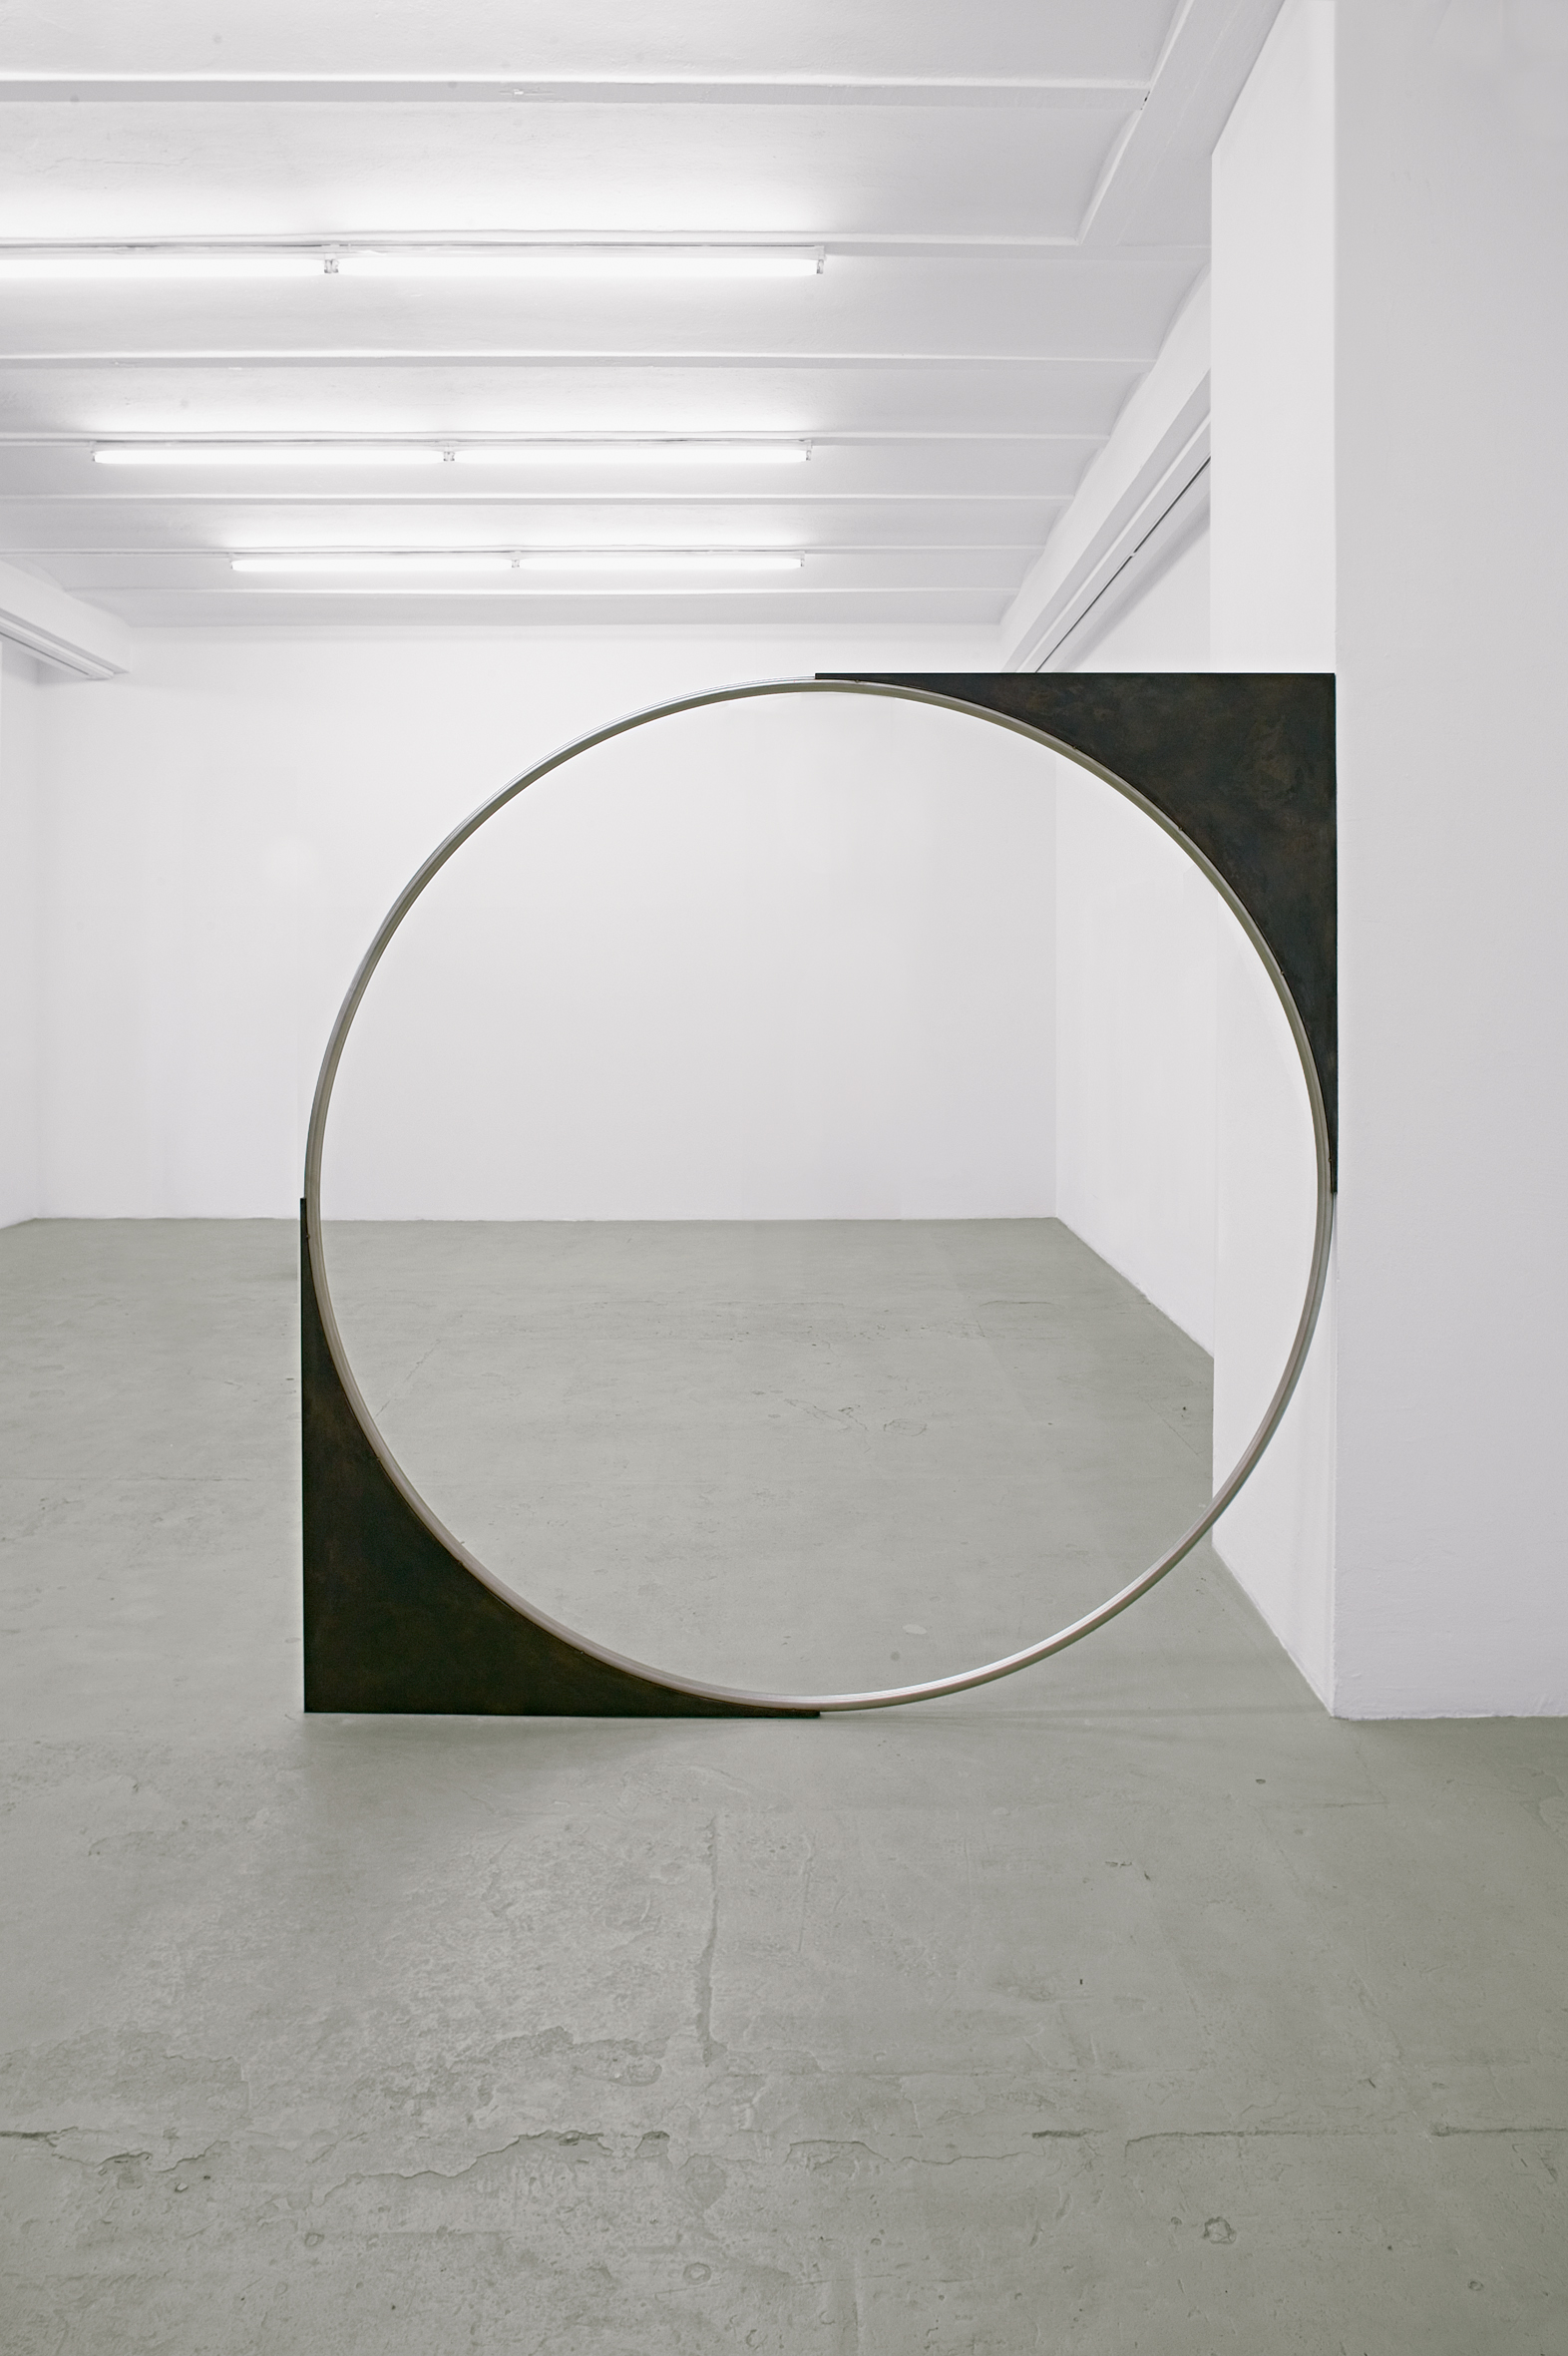 Nicole Wermers - Untitled Forcefield (Single Ring) - 2007 - courtesy l'artista e Accademia Tedesca Villa Massimo, Roma